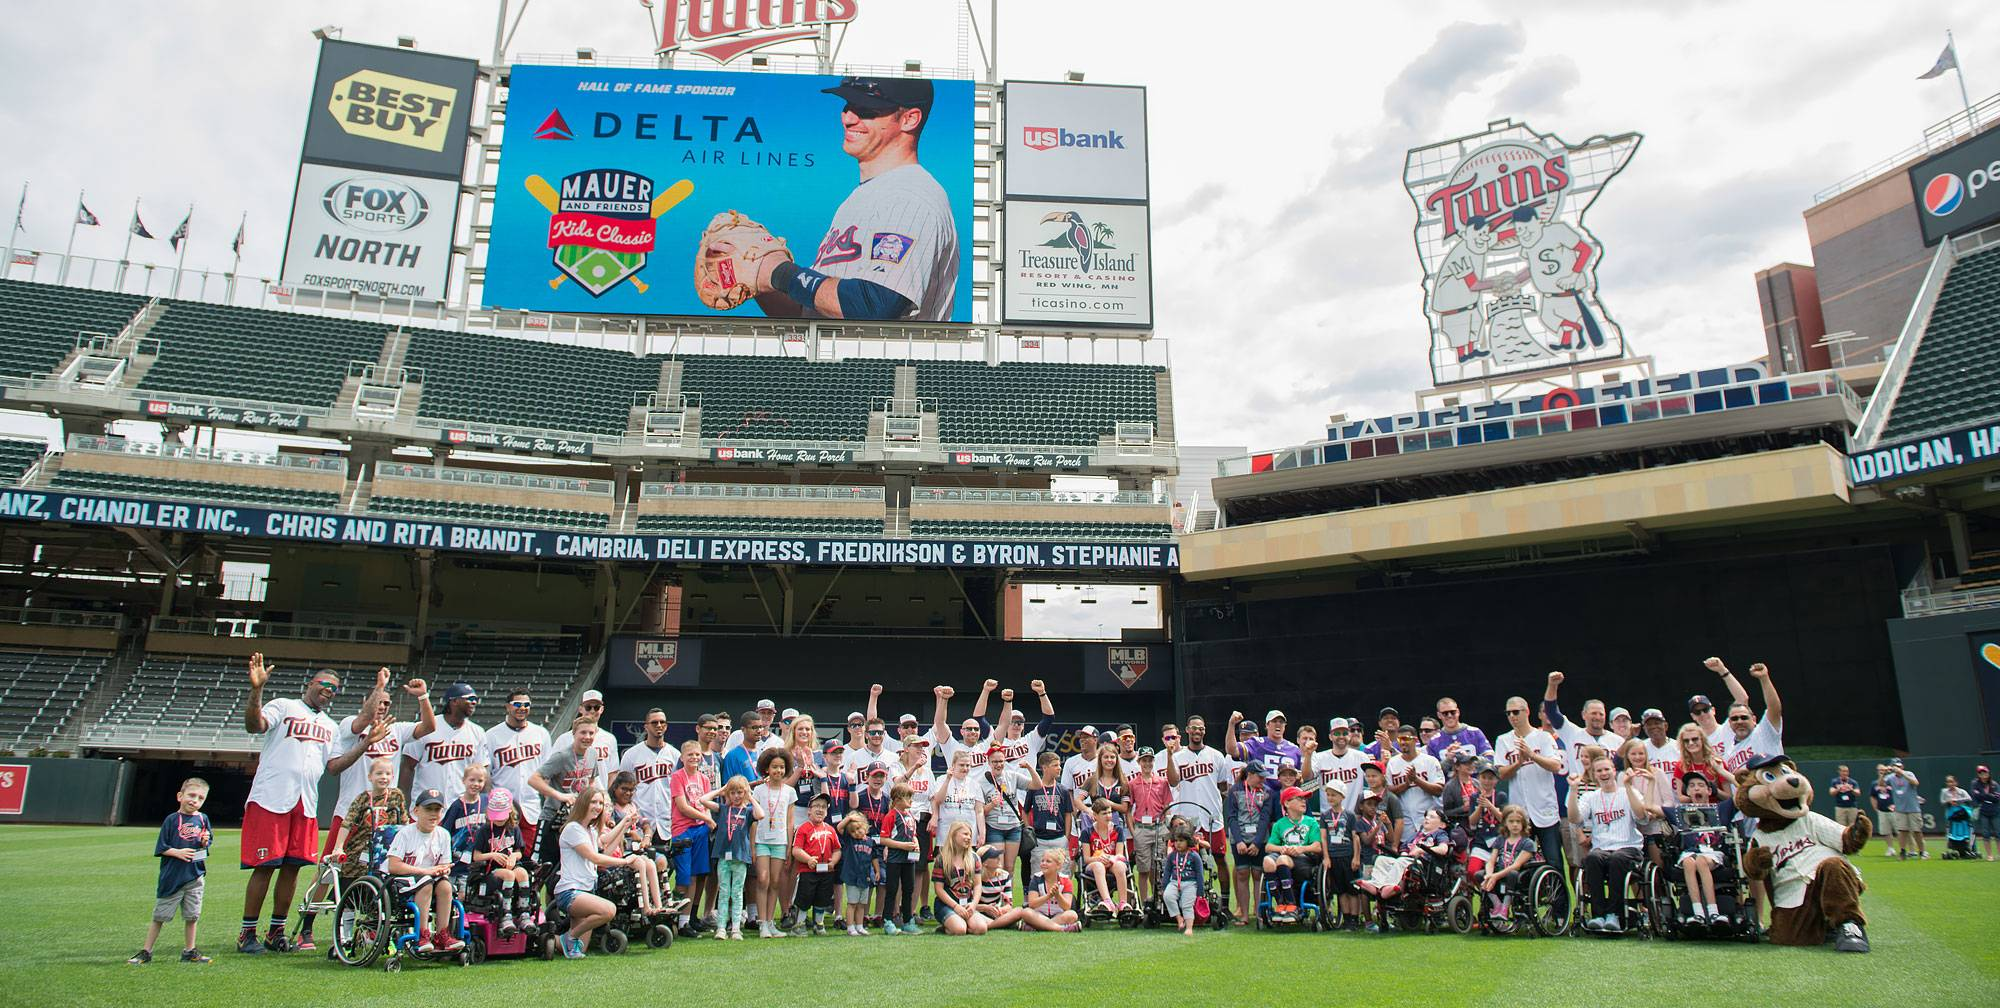 View of attendees at 2017 Mauer Kids Classic on Target Field.